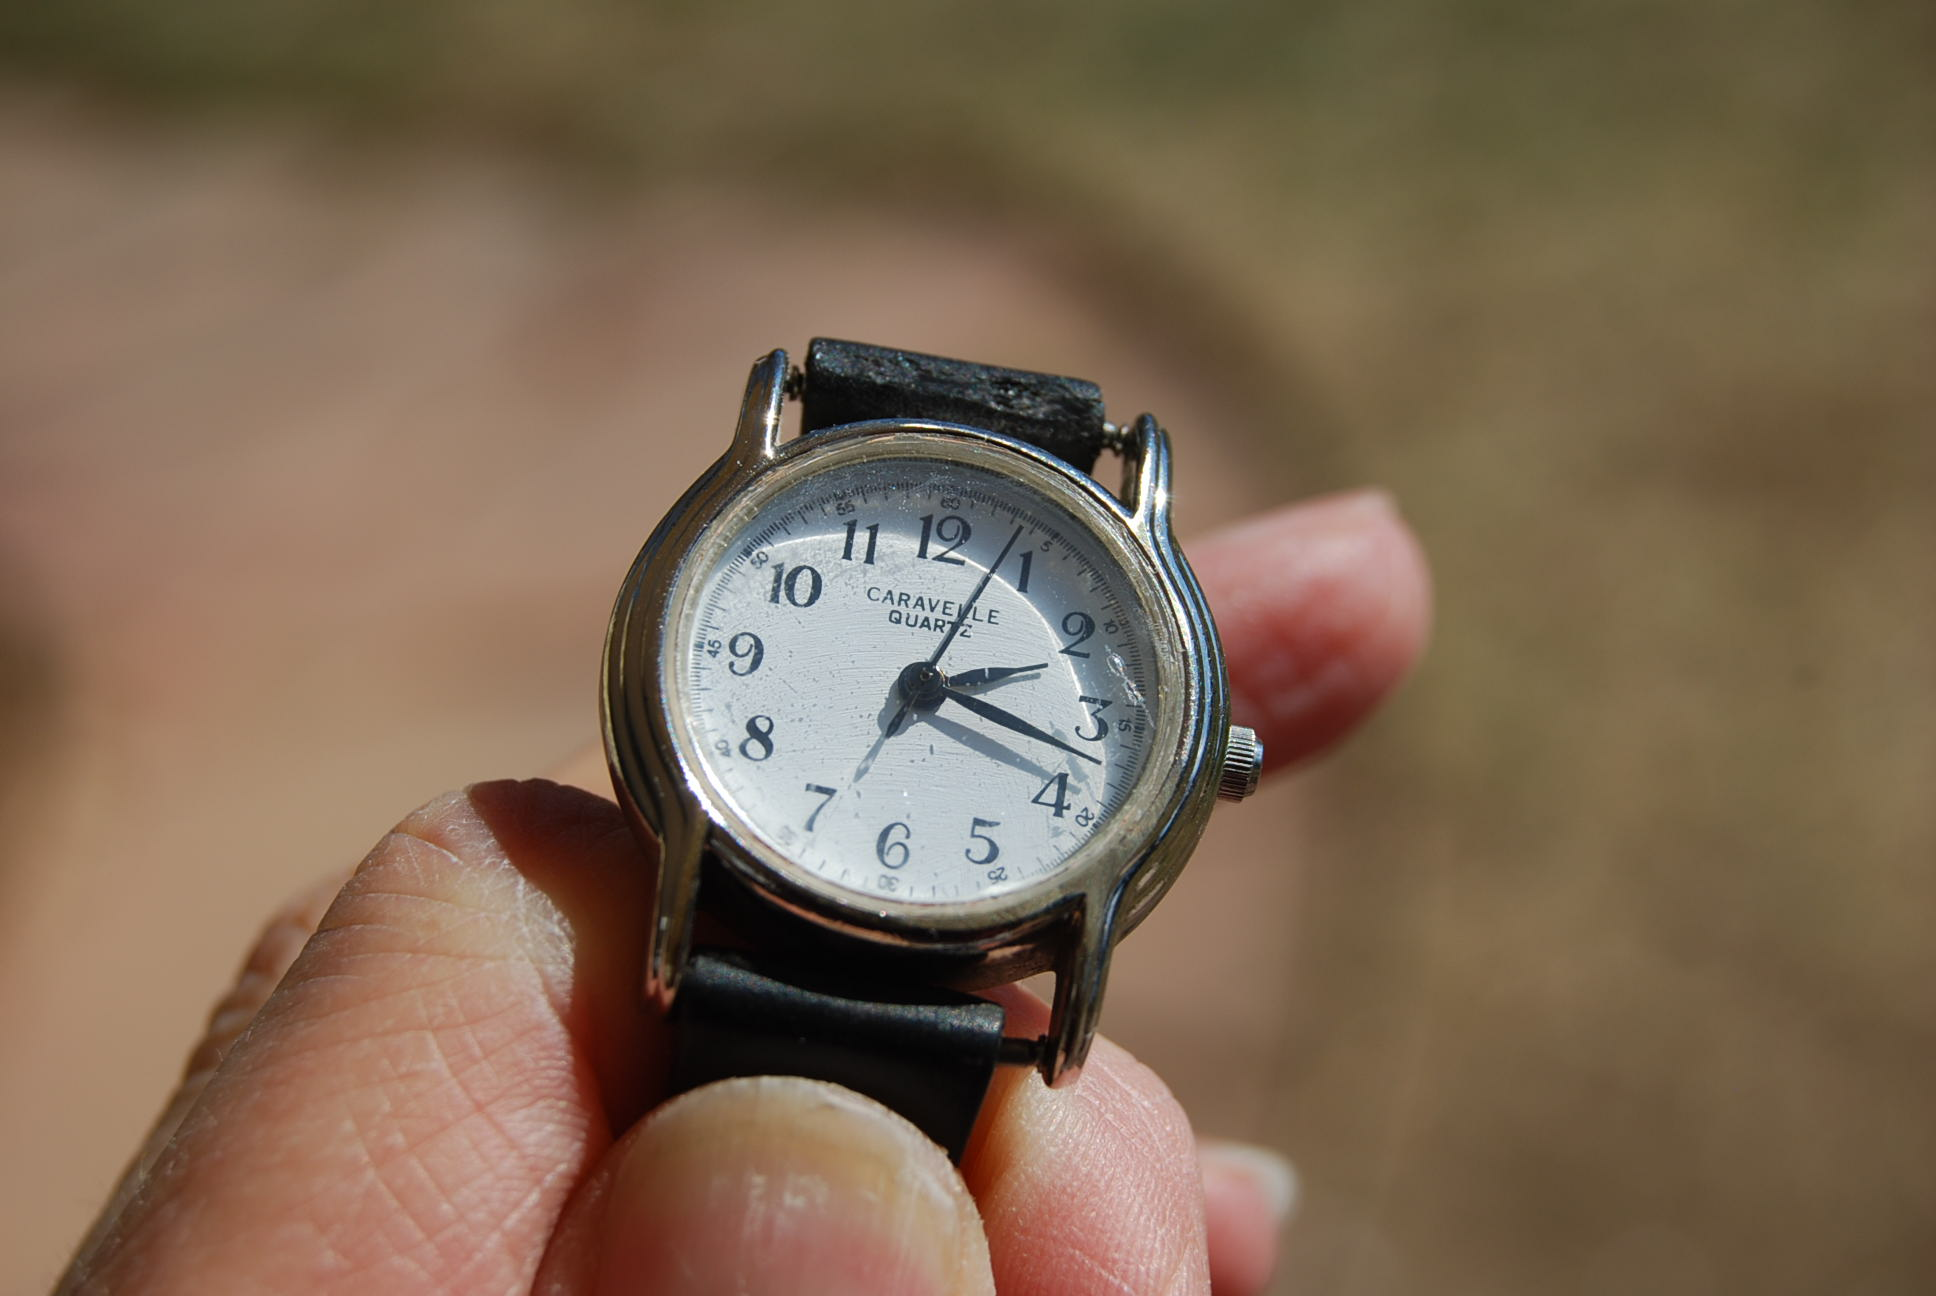 Vintage watch after restoring etched glass with cerium oxide